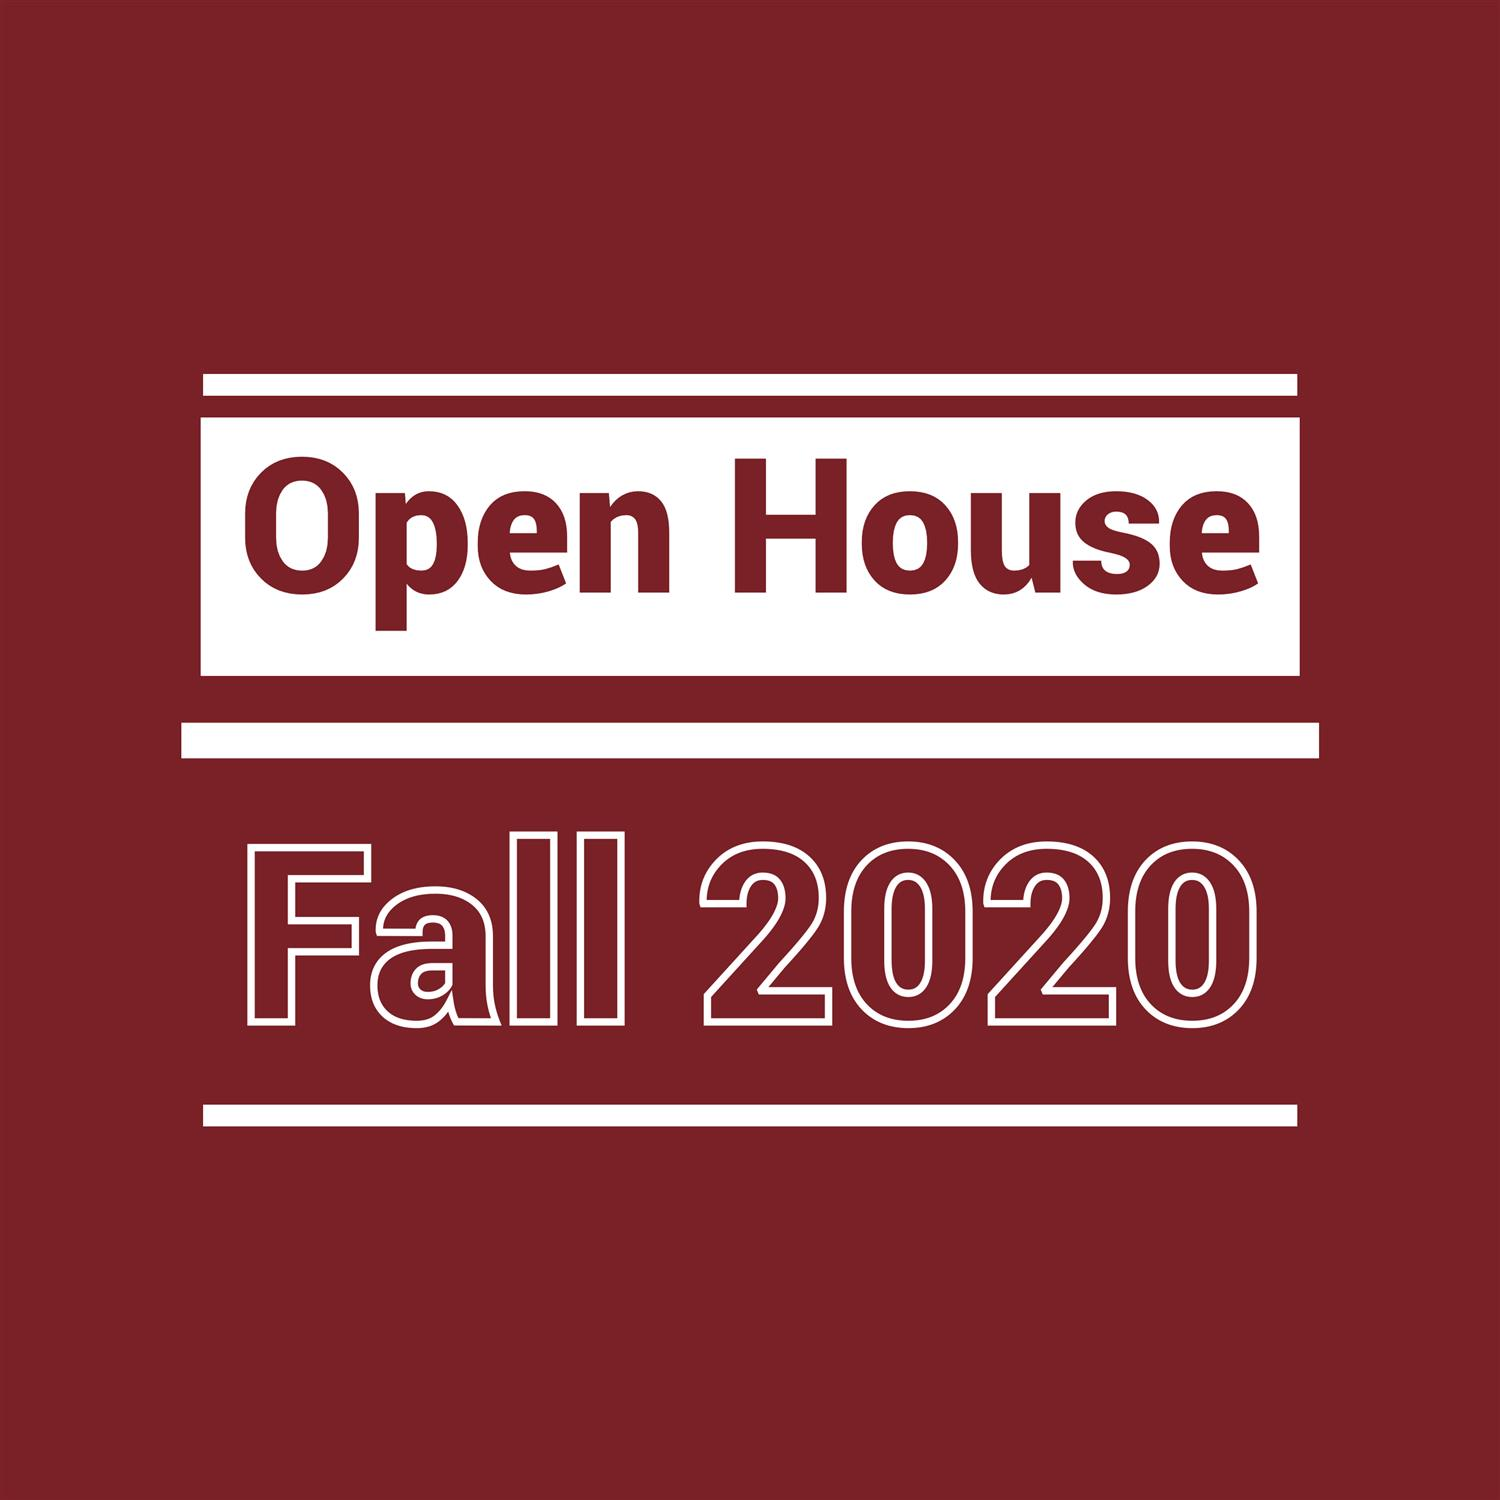 Open House - Fall 2020